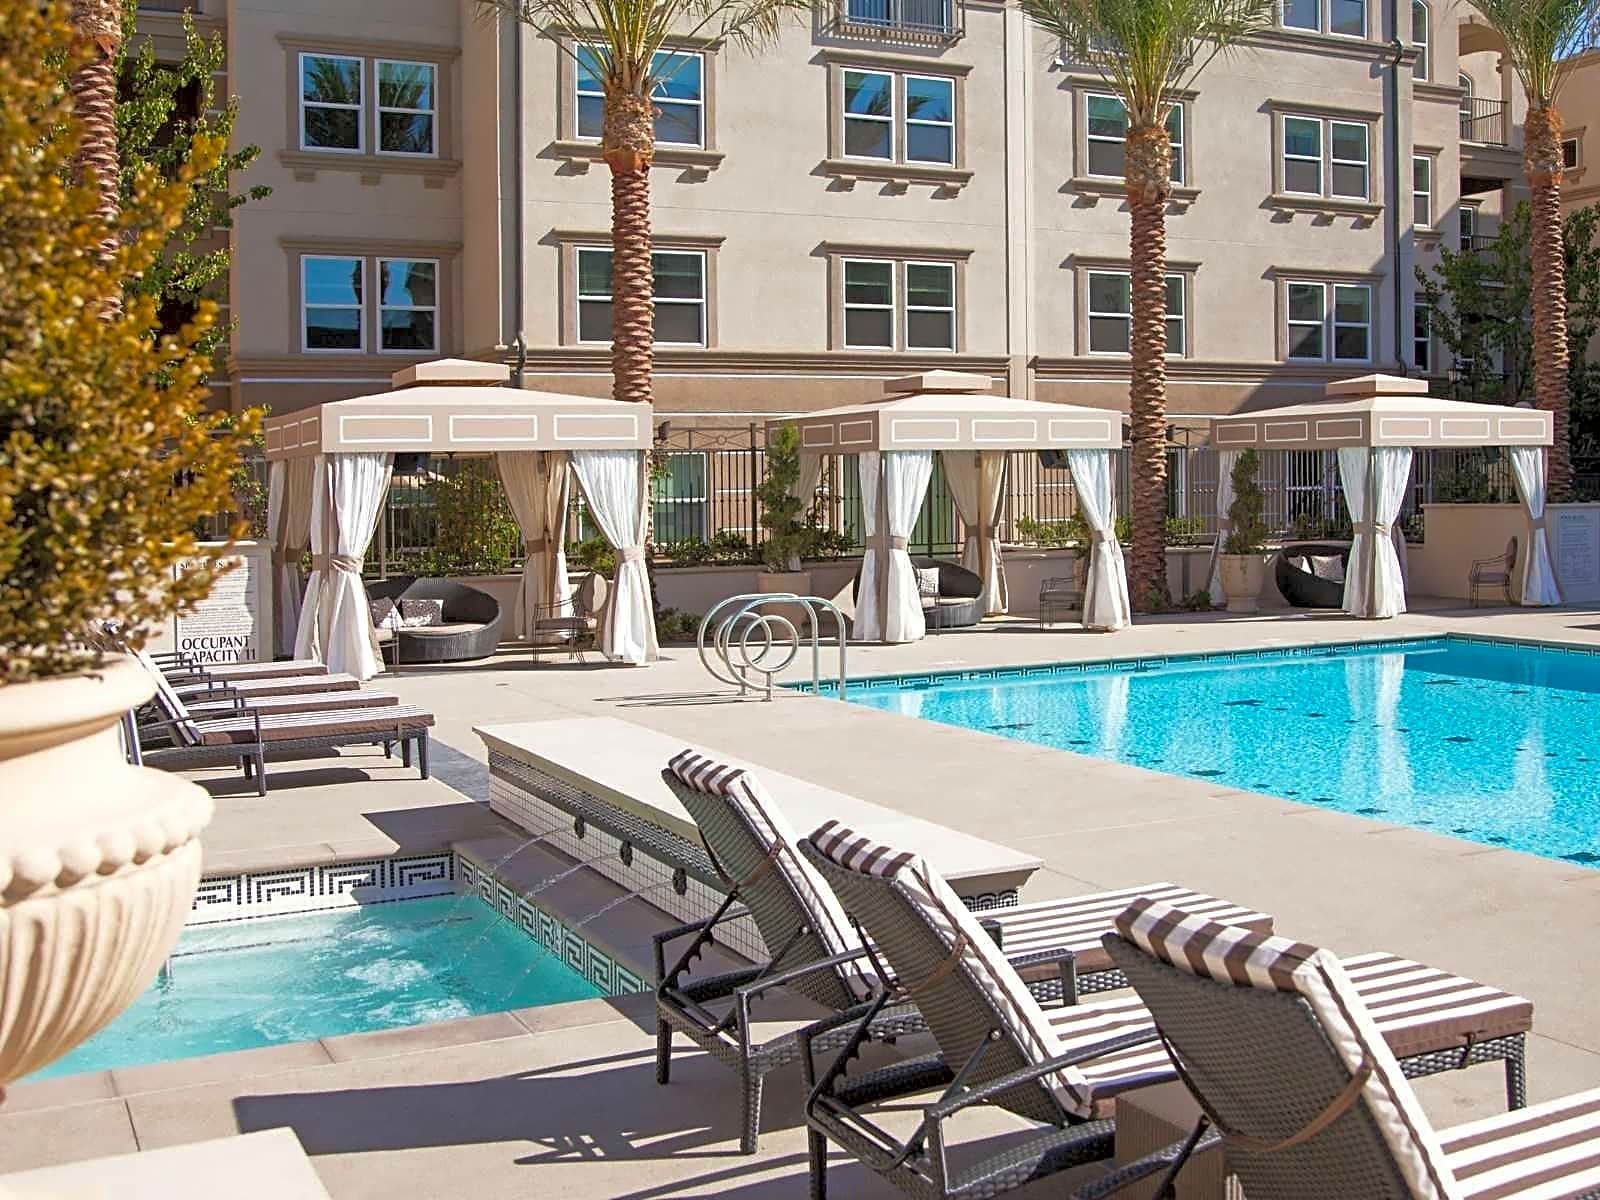 Apartments Near UC Irvine The Carlyle for University of California - Irvine Students in Irvine, CA